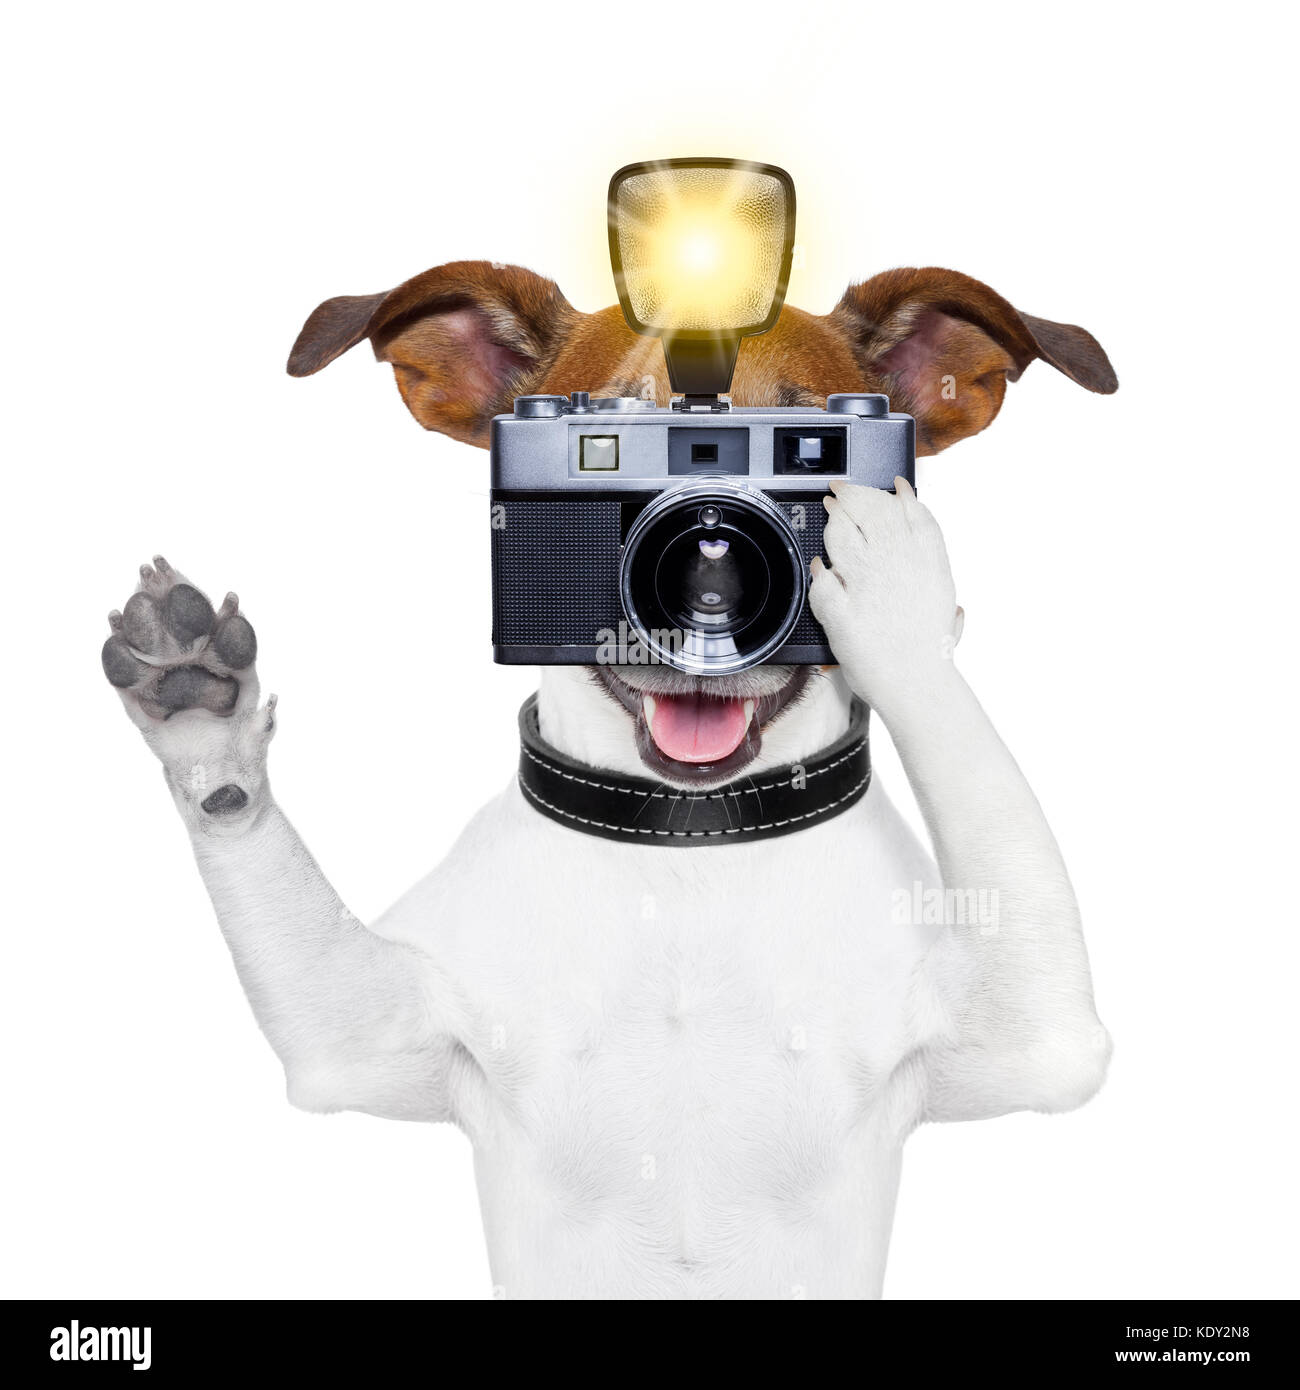 dog taking a photo with an old camera and flashgun - Stock Image